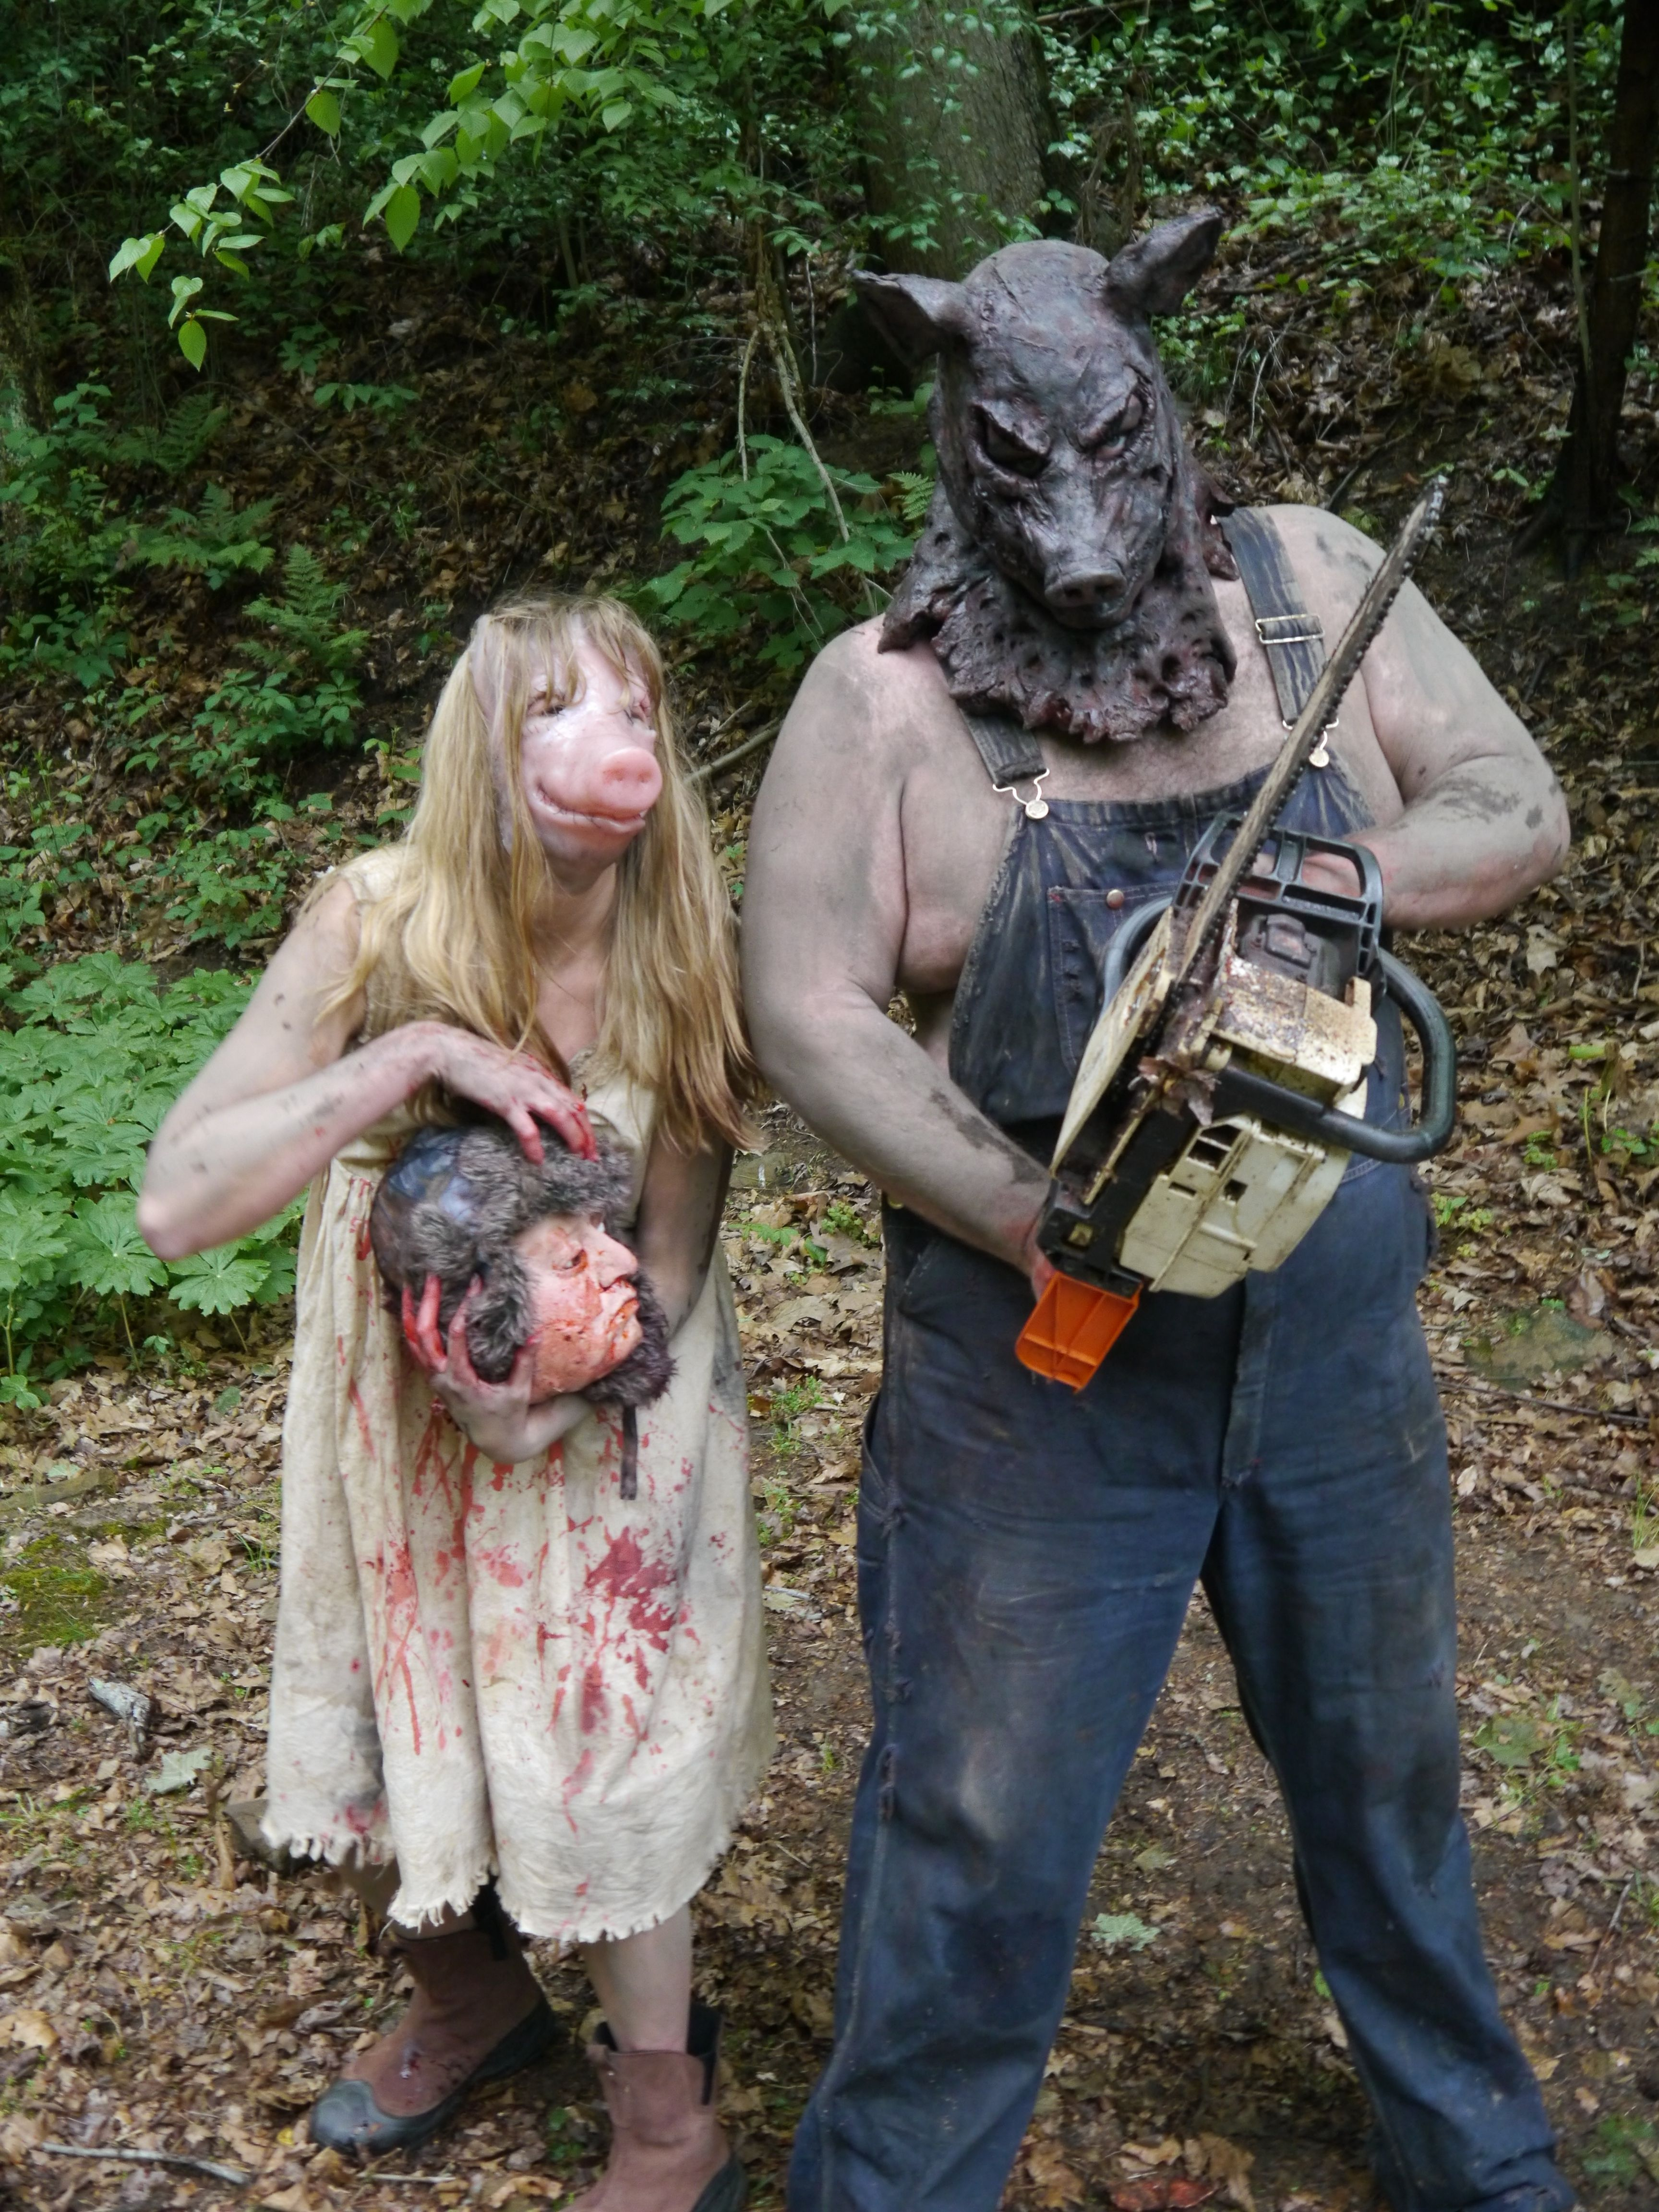 Porkchop Pig Girl WV Backwoods Horror! #Scary #gore #gore